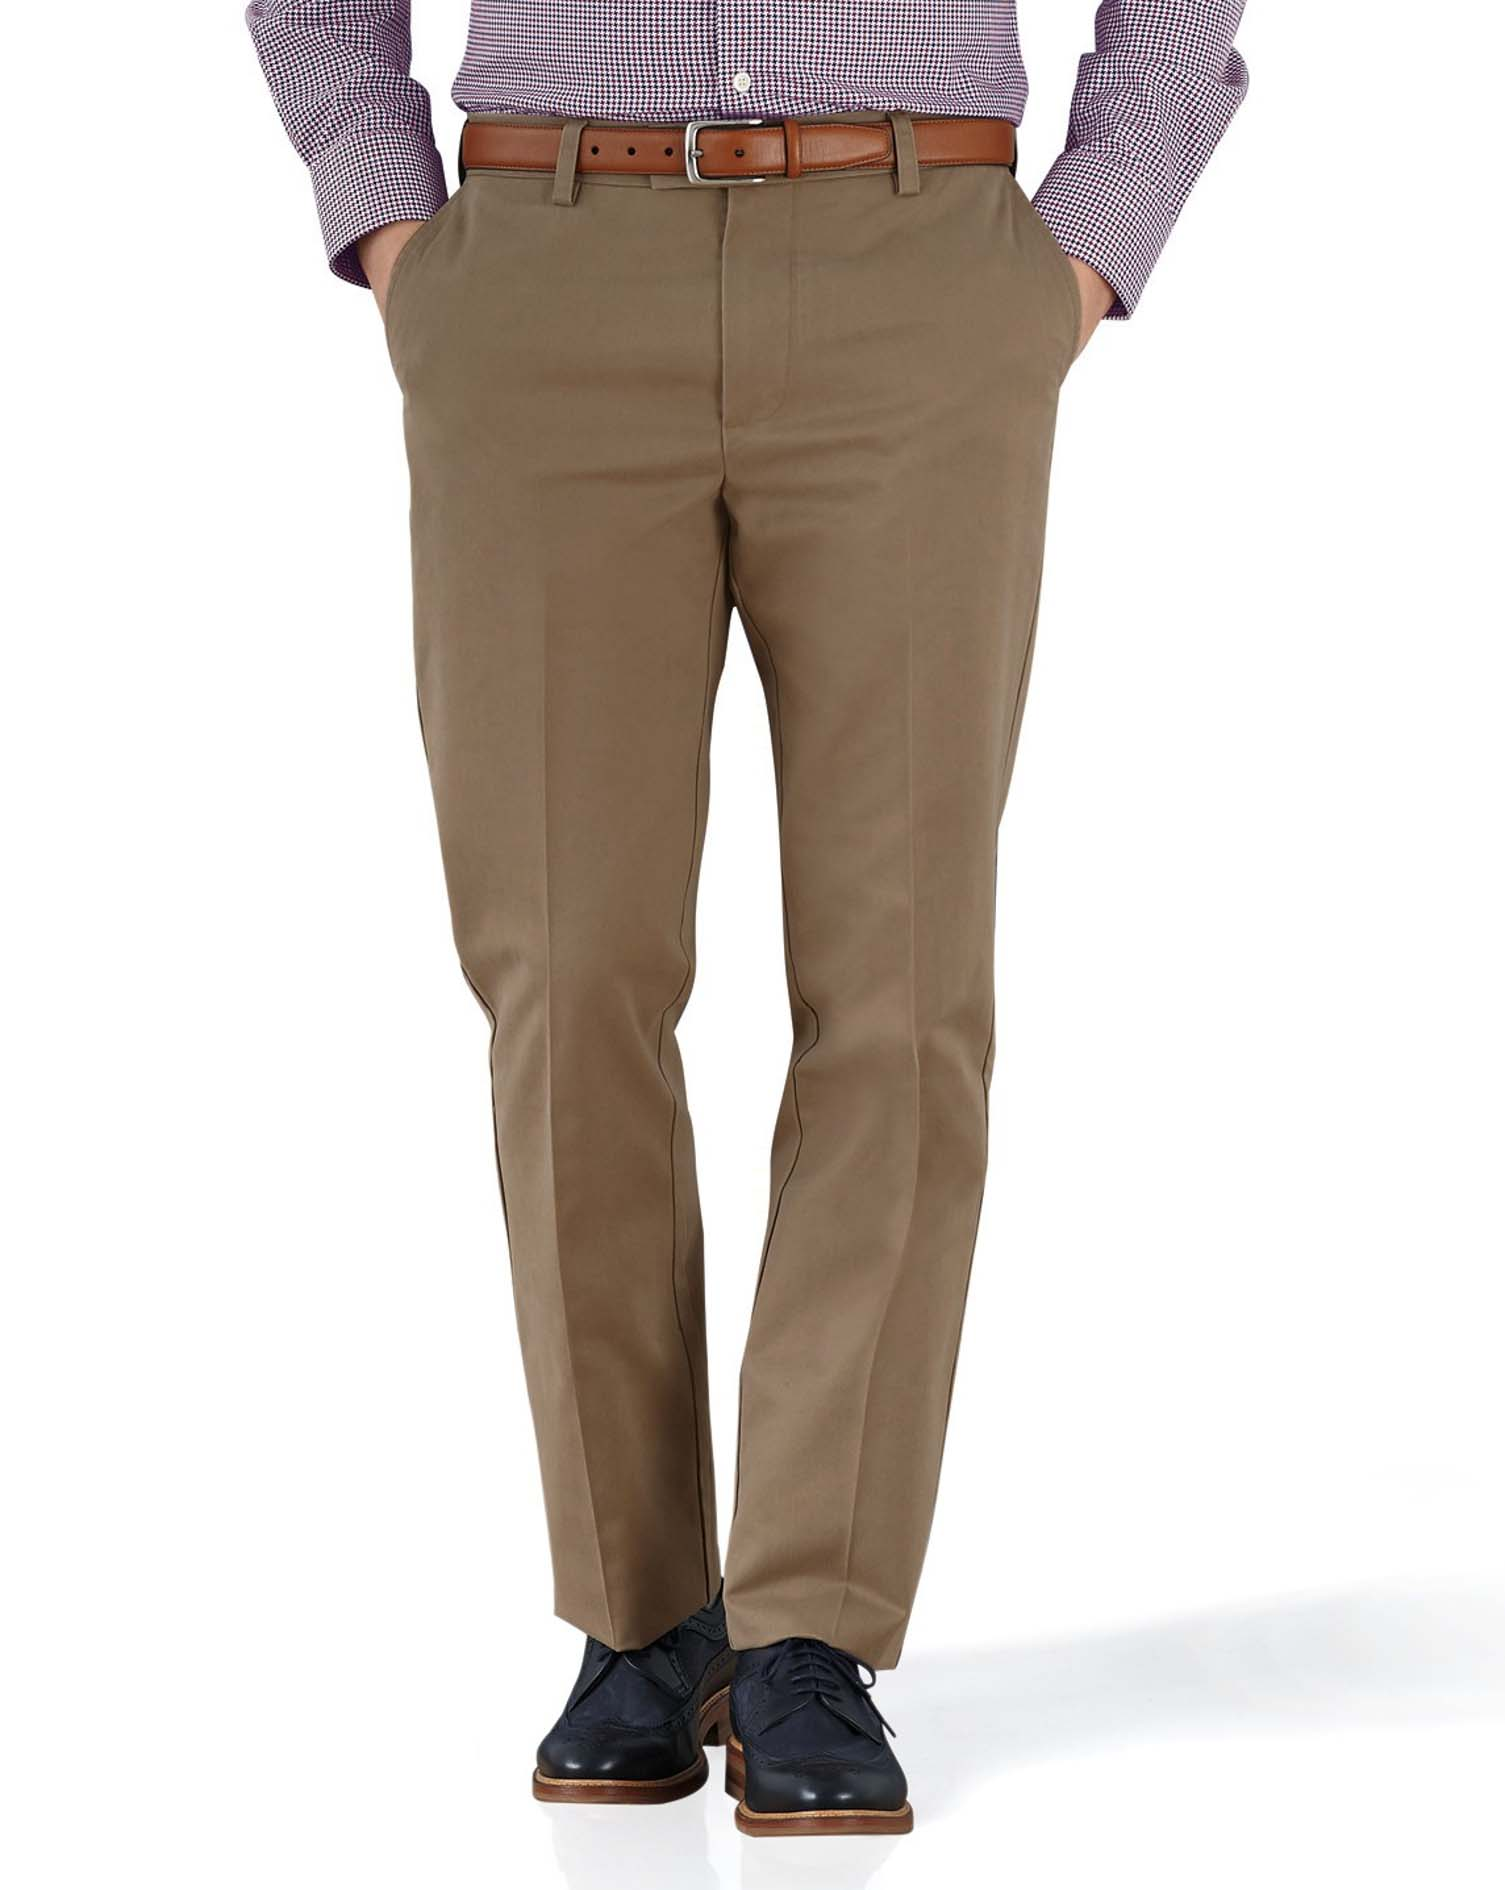 Tan Slim Fit Flat Front Non-Iron Cotton Chino Trousers Size W38 L32 by Charles Tyrwhitt